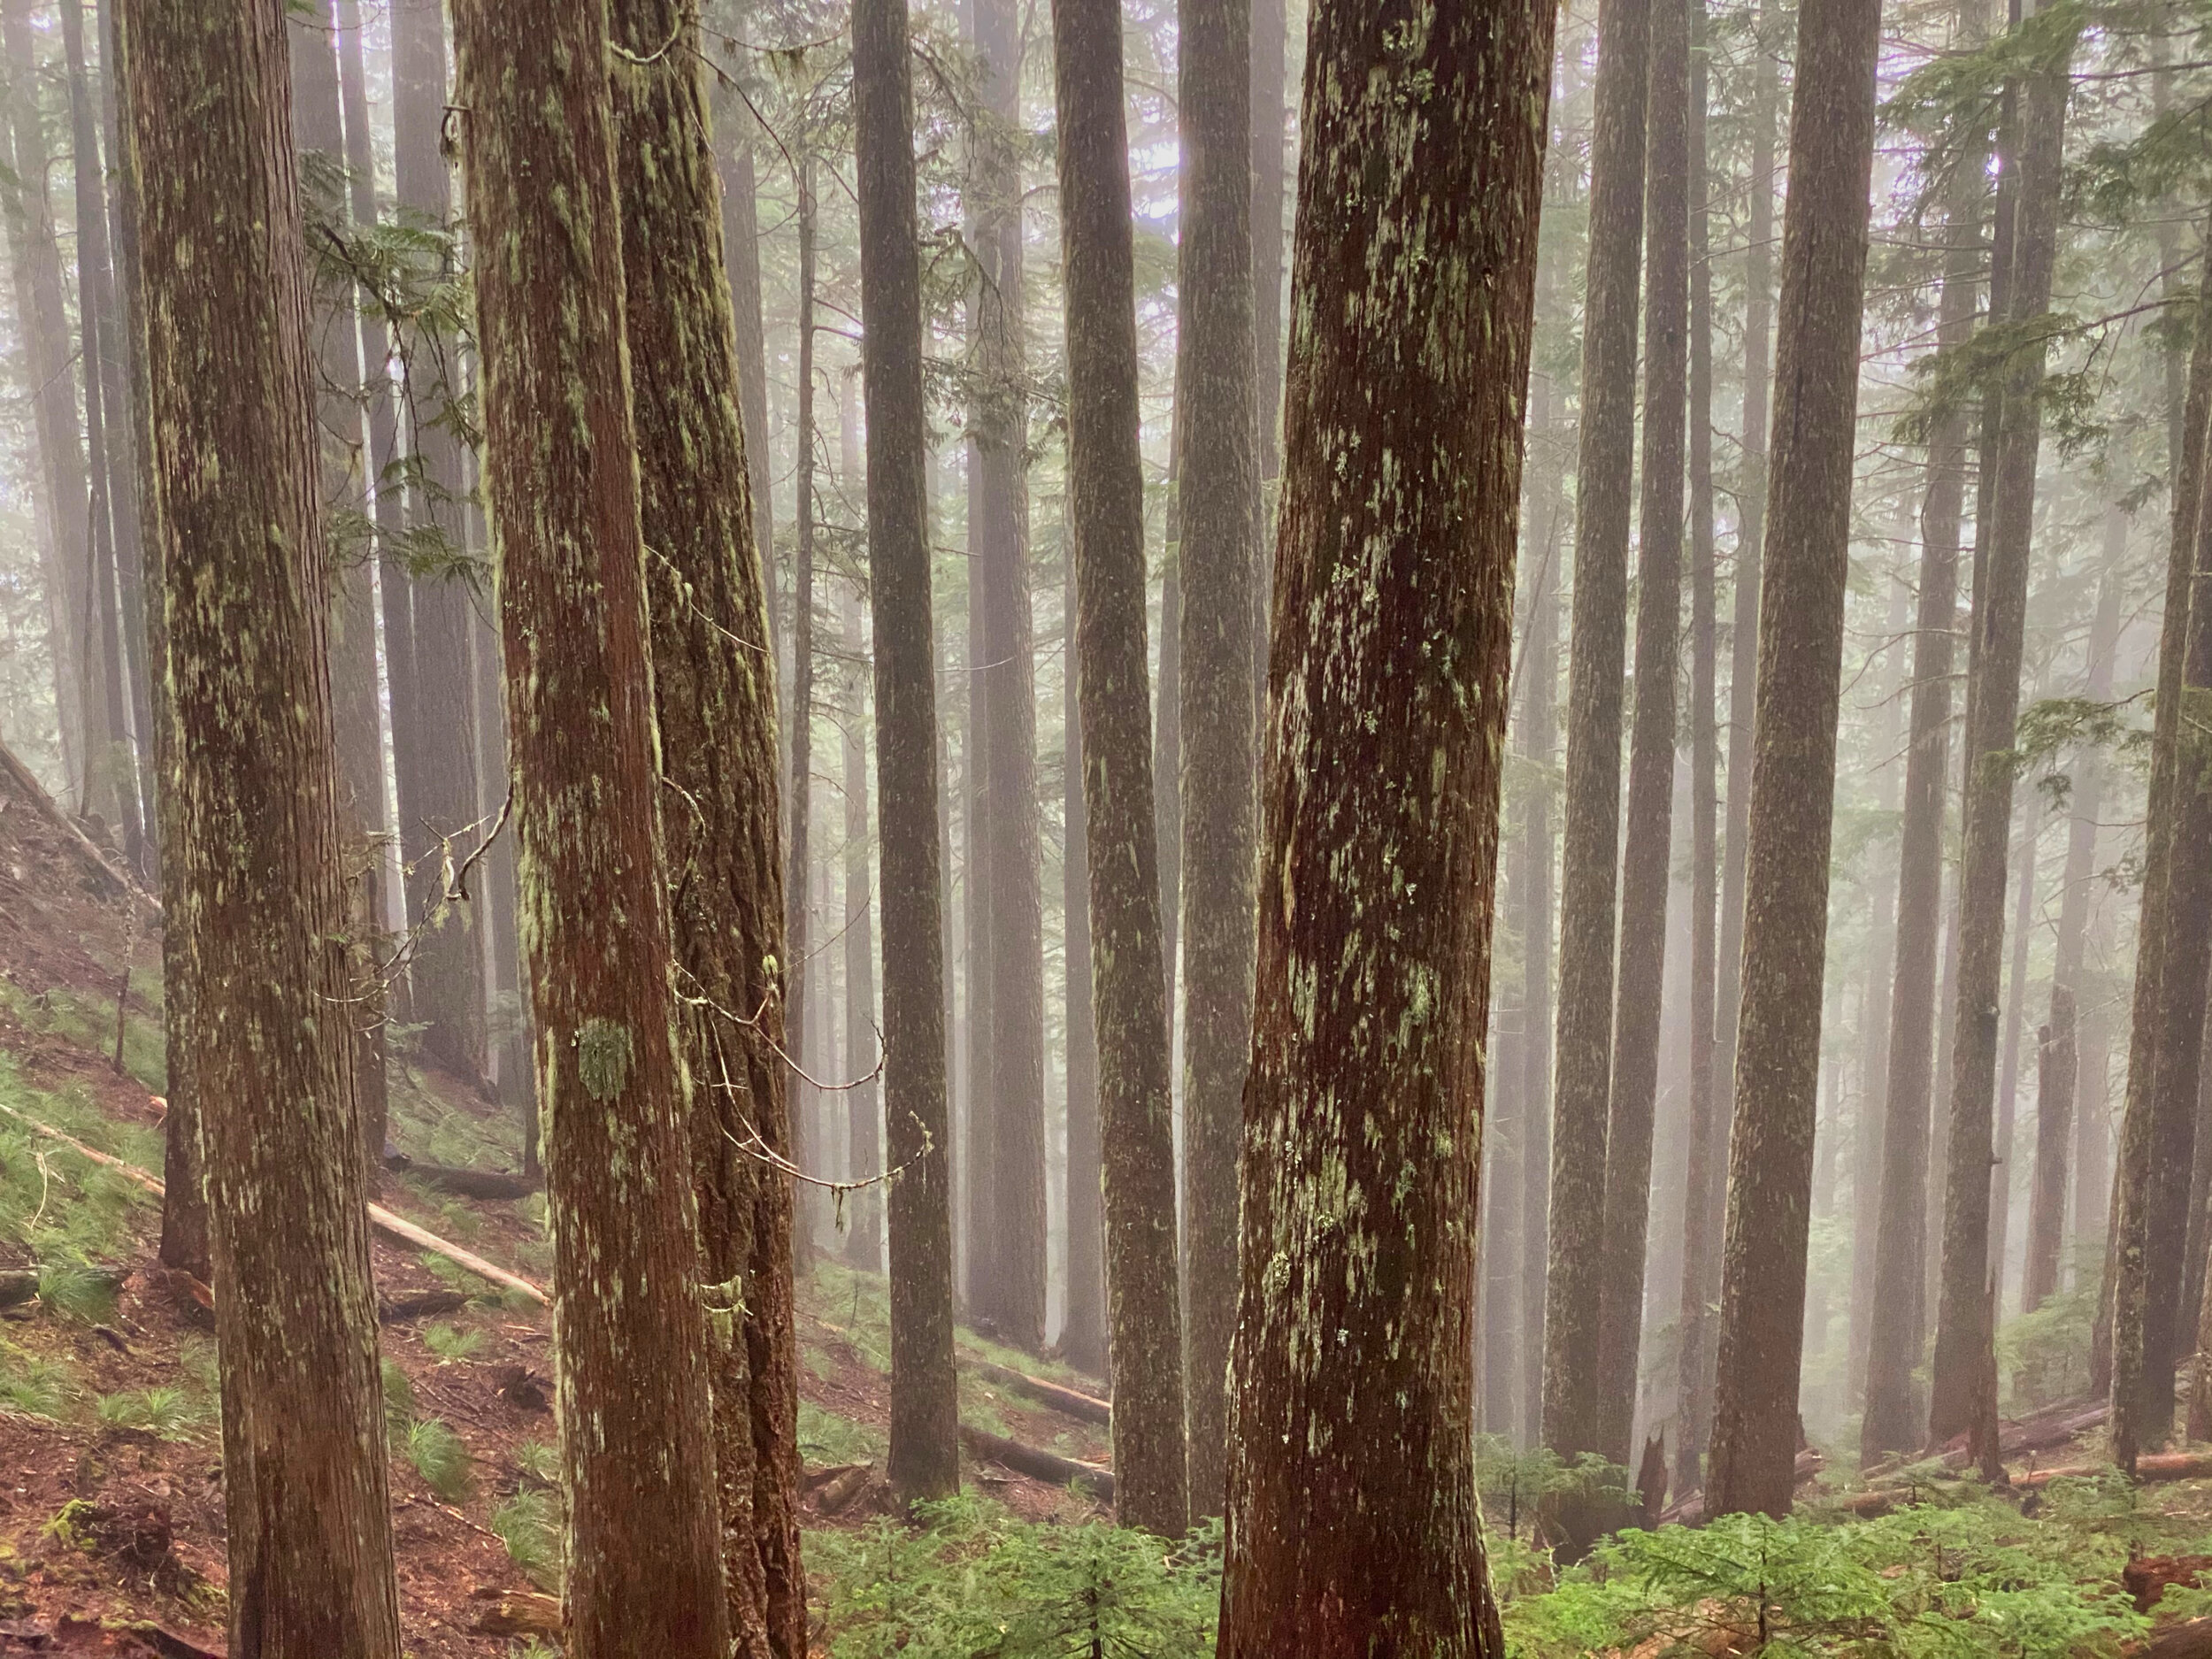 The misty woods; Mt. Rainier's Boundary Trail